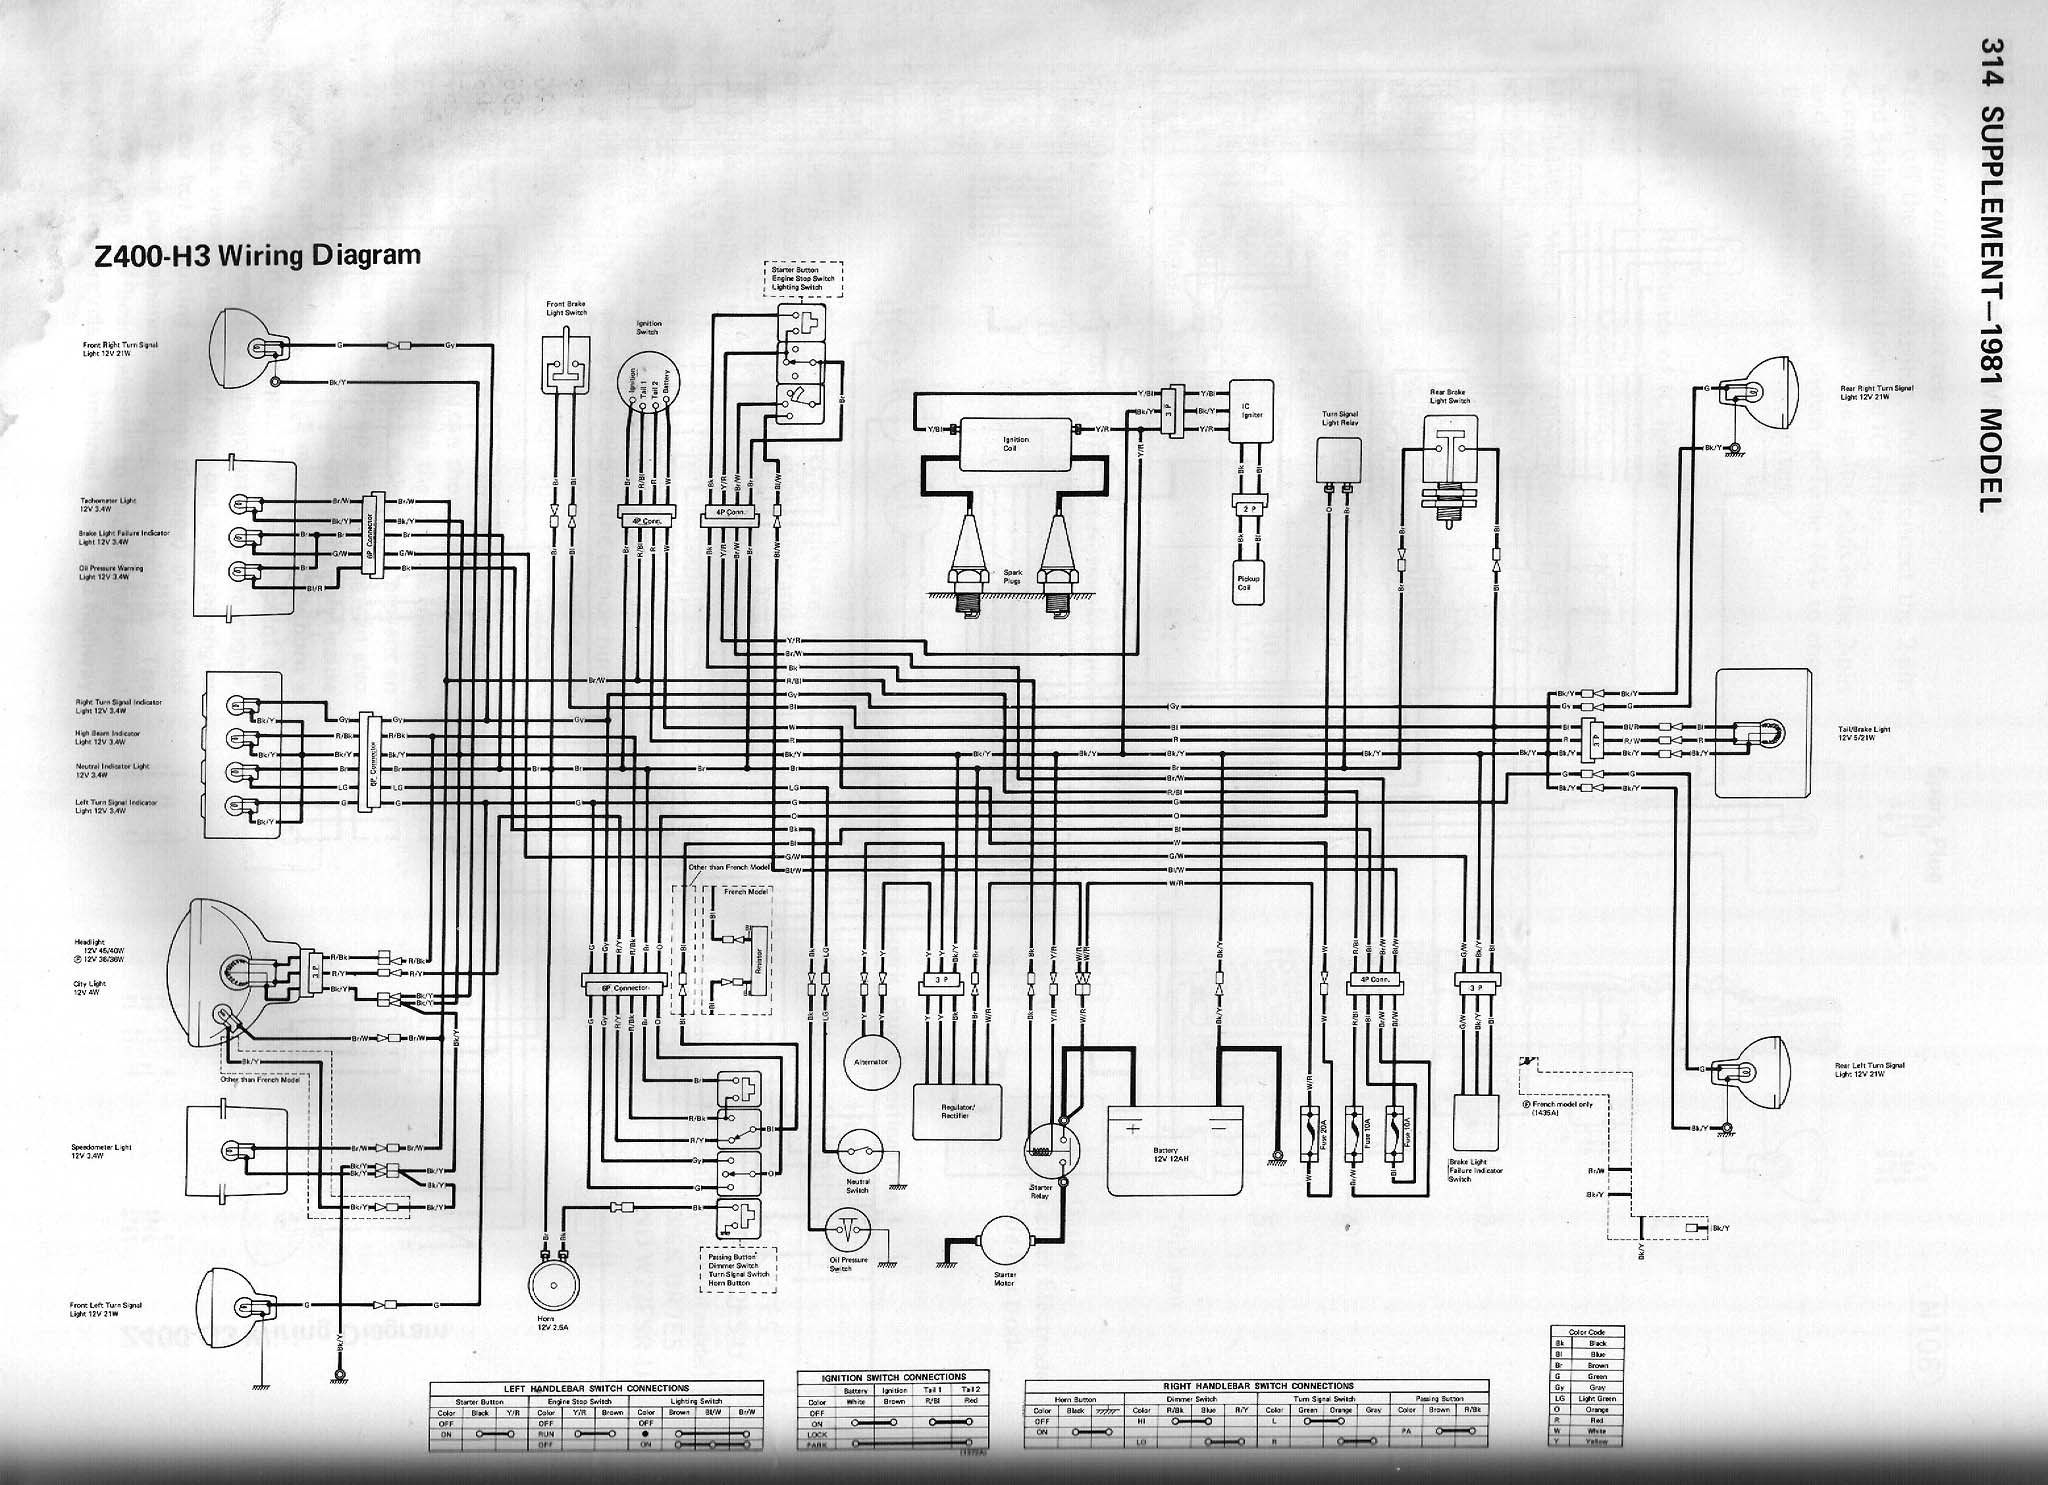 Kz400 Wiring Diagram Reinvent Your Wire 1977 Kawasaki 650 Index Of Techh Tips Bilder Diagrams Rh Com 1975